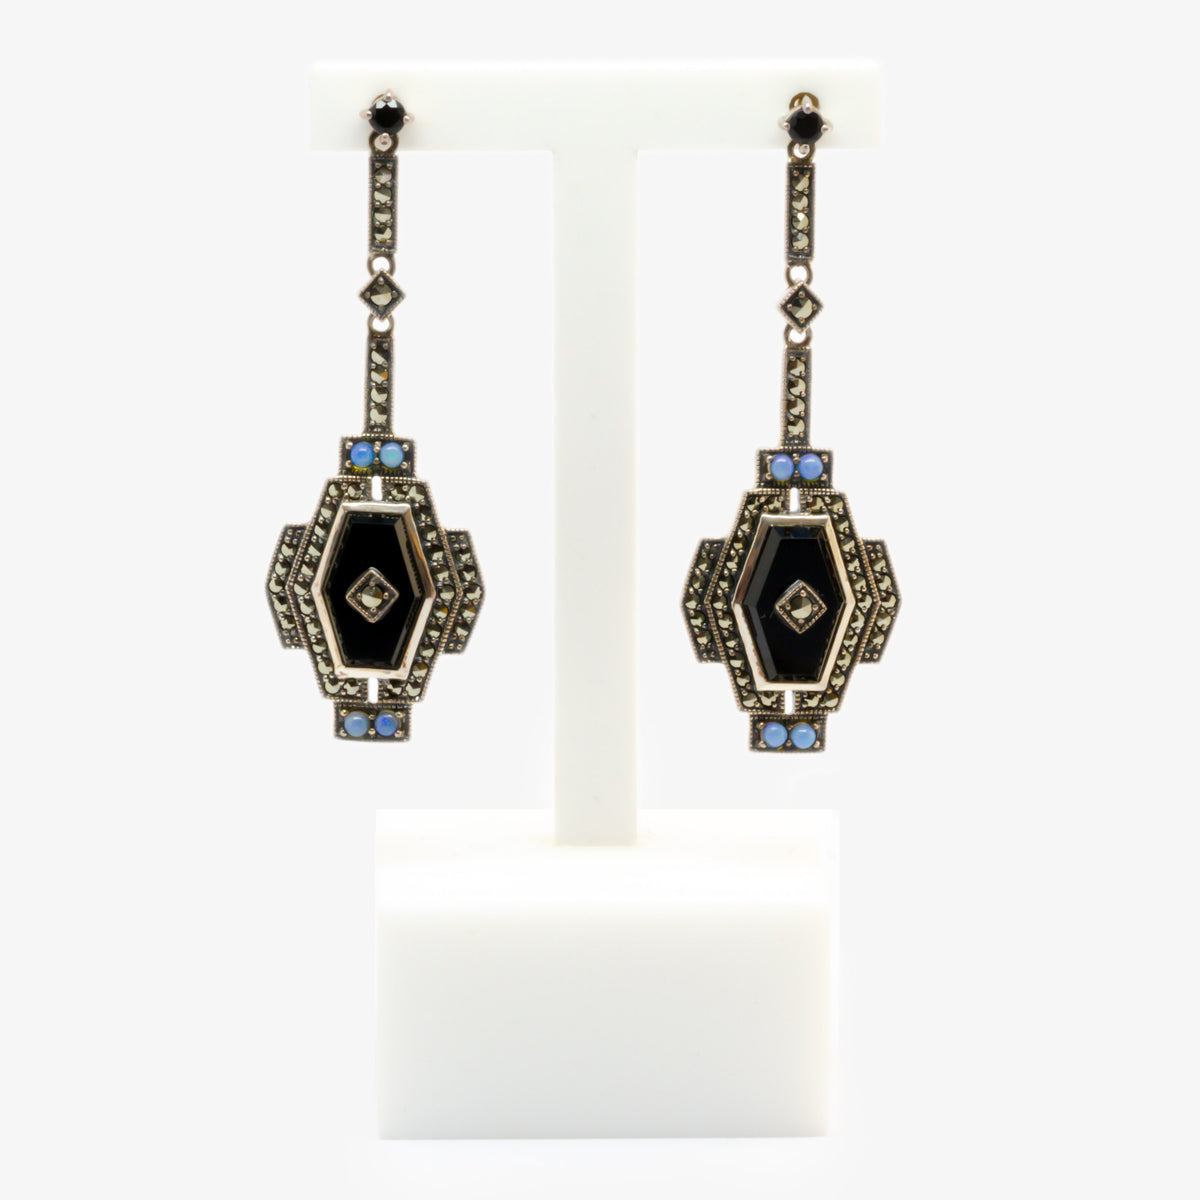 Picture of earrings in silver with marcasite, black onyx with four opals and a long drop in an art deco style front view.